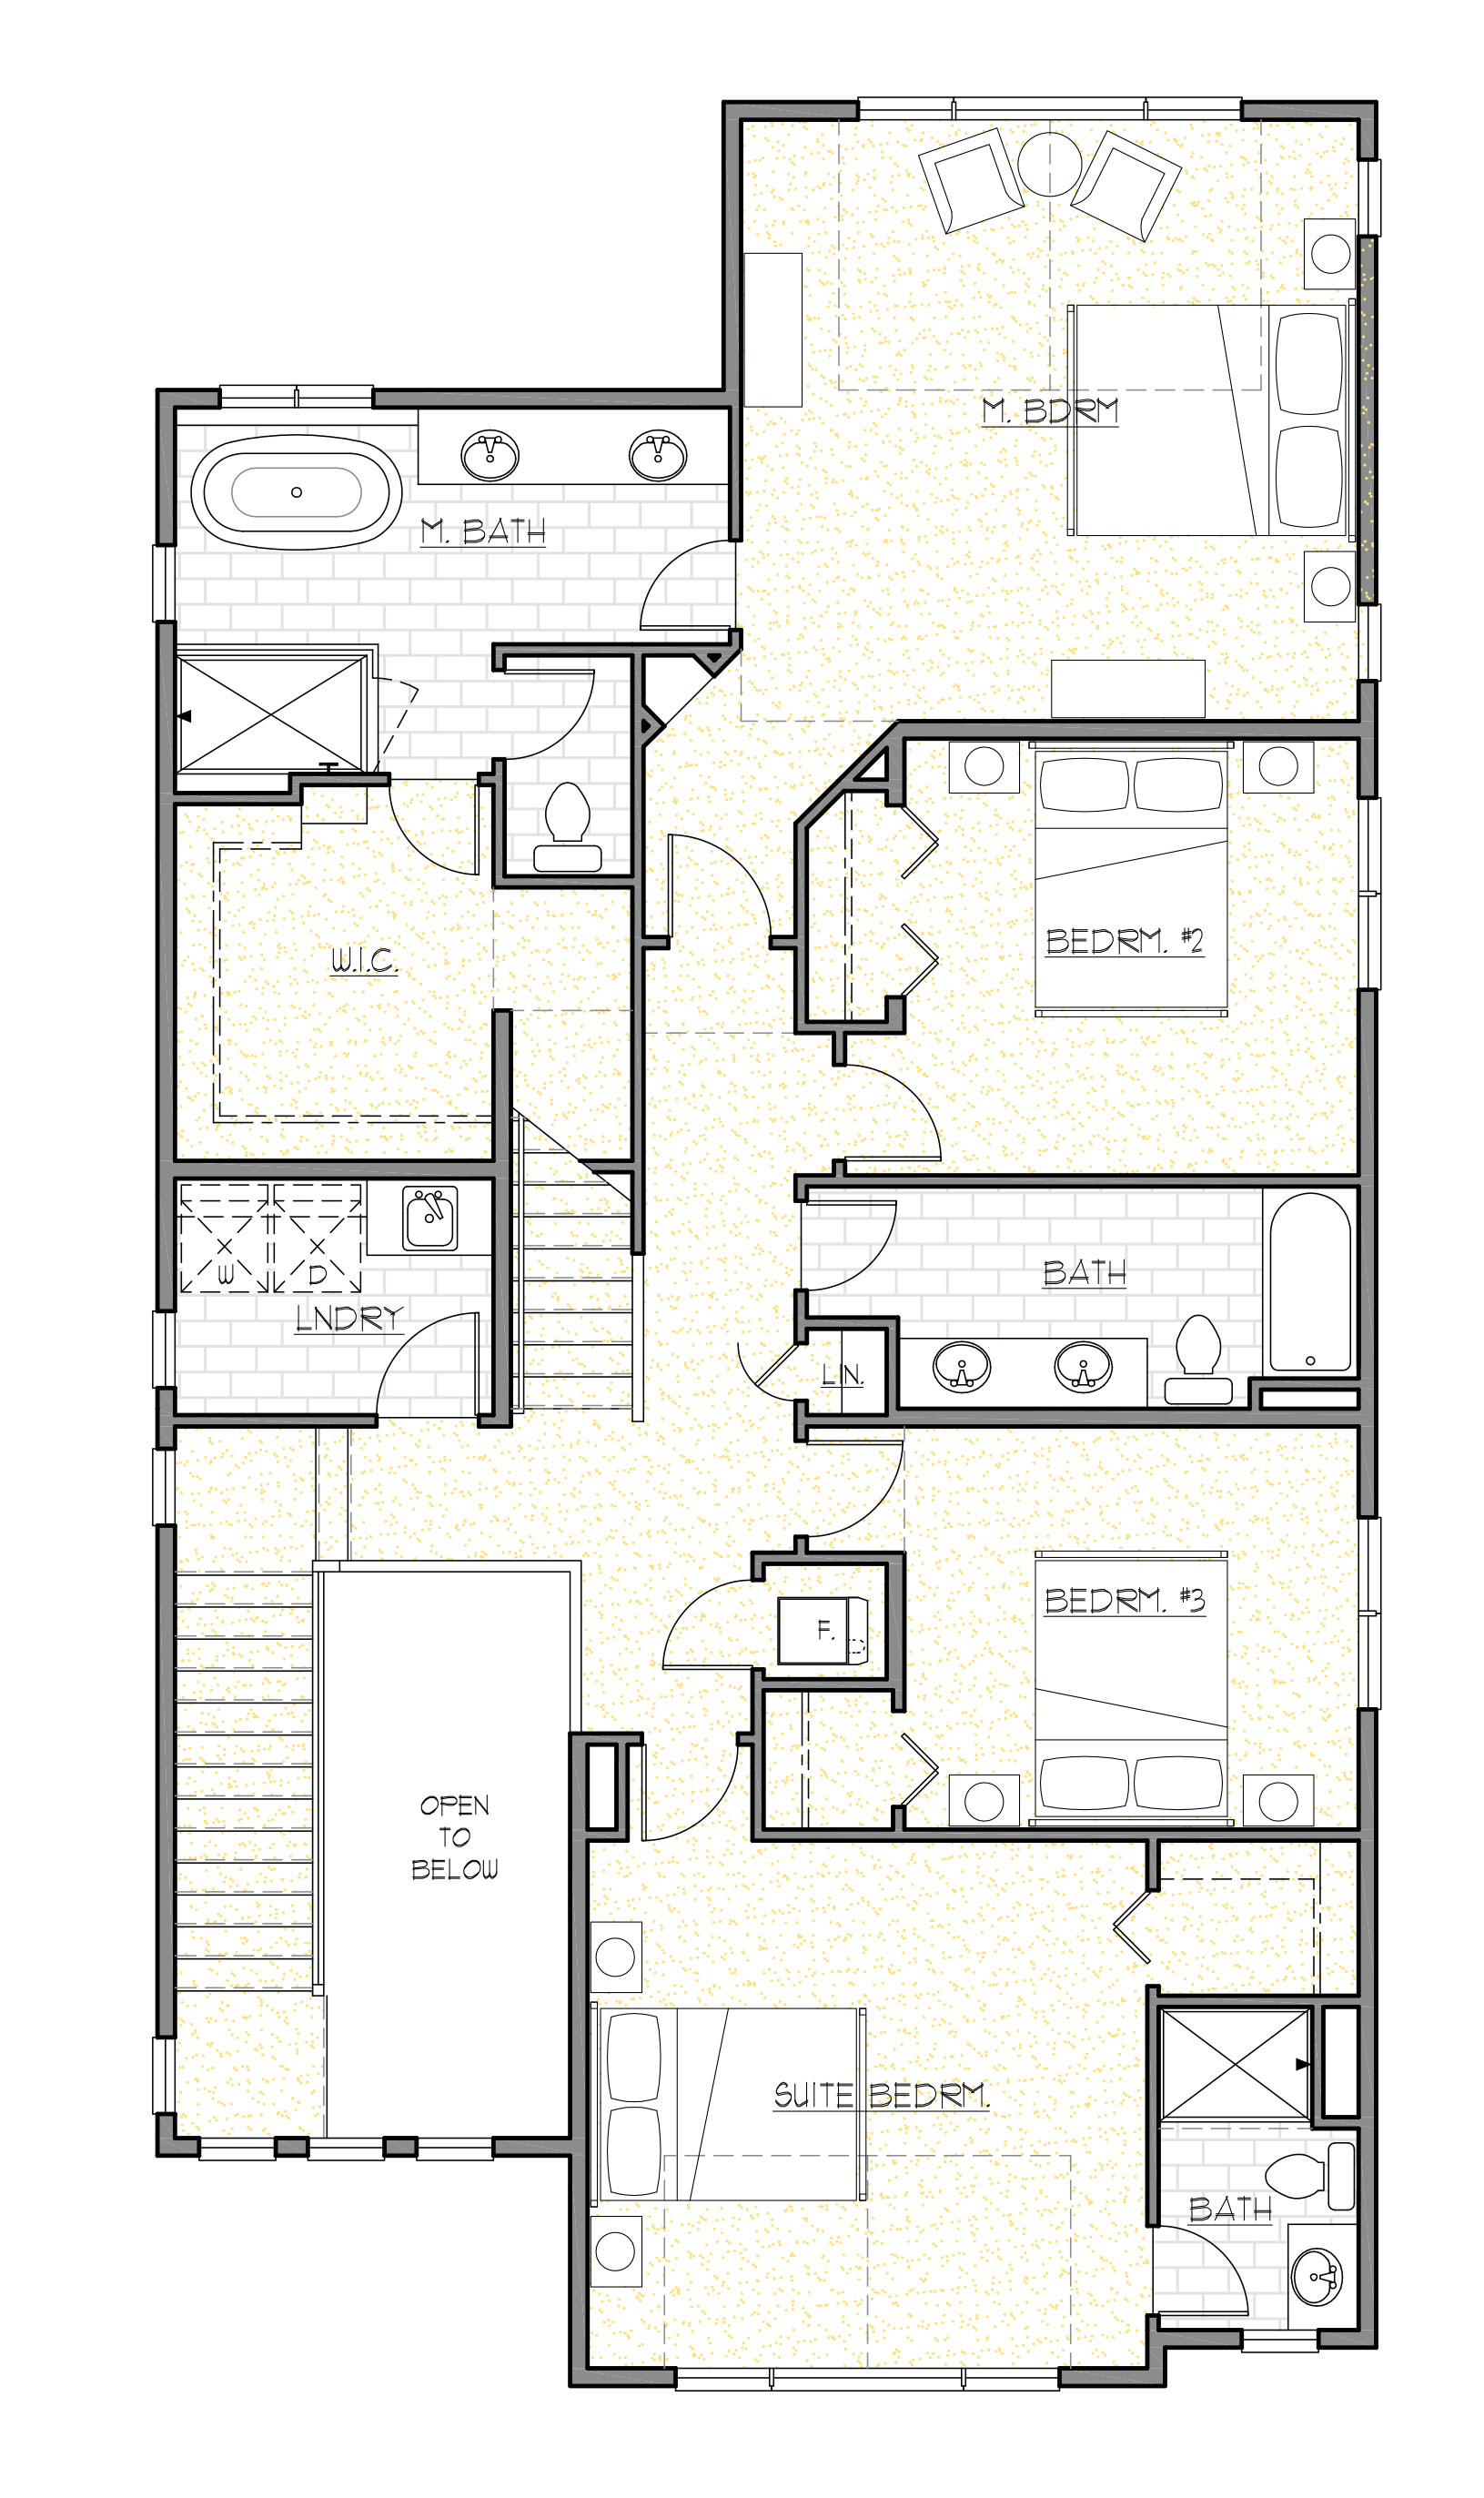 Copy of Upper Floor Plan